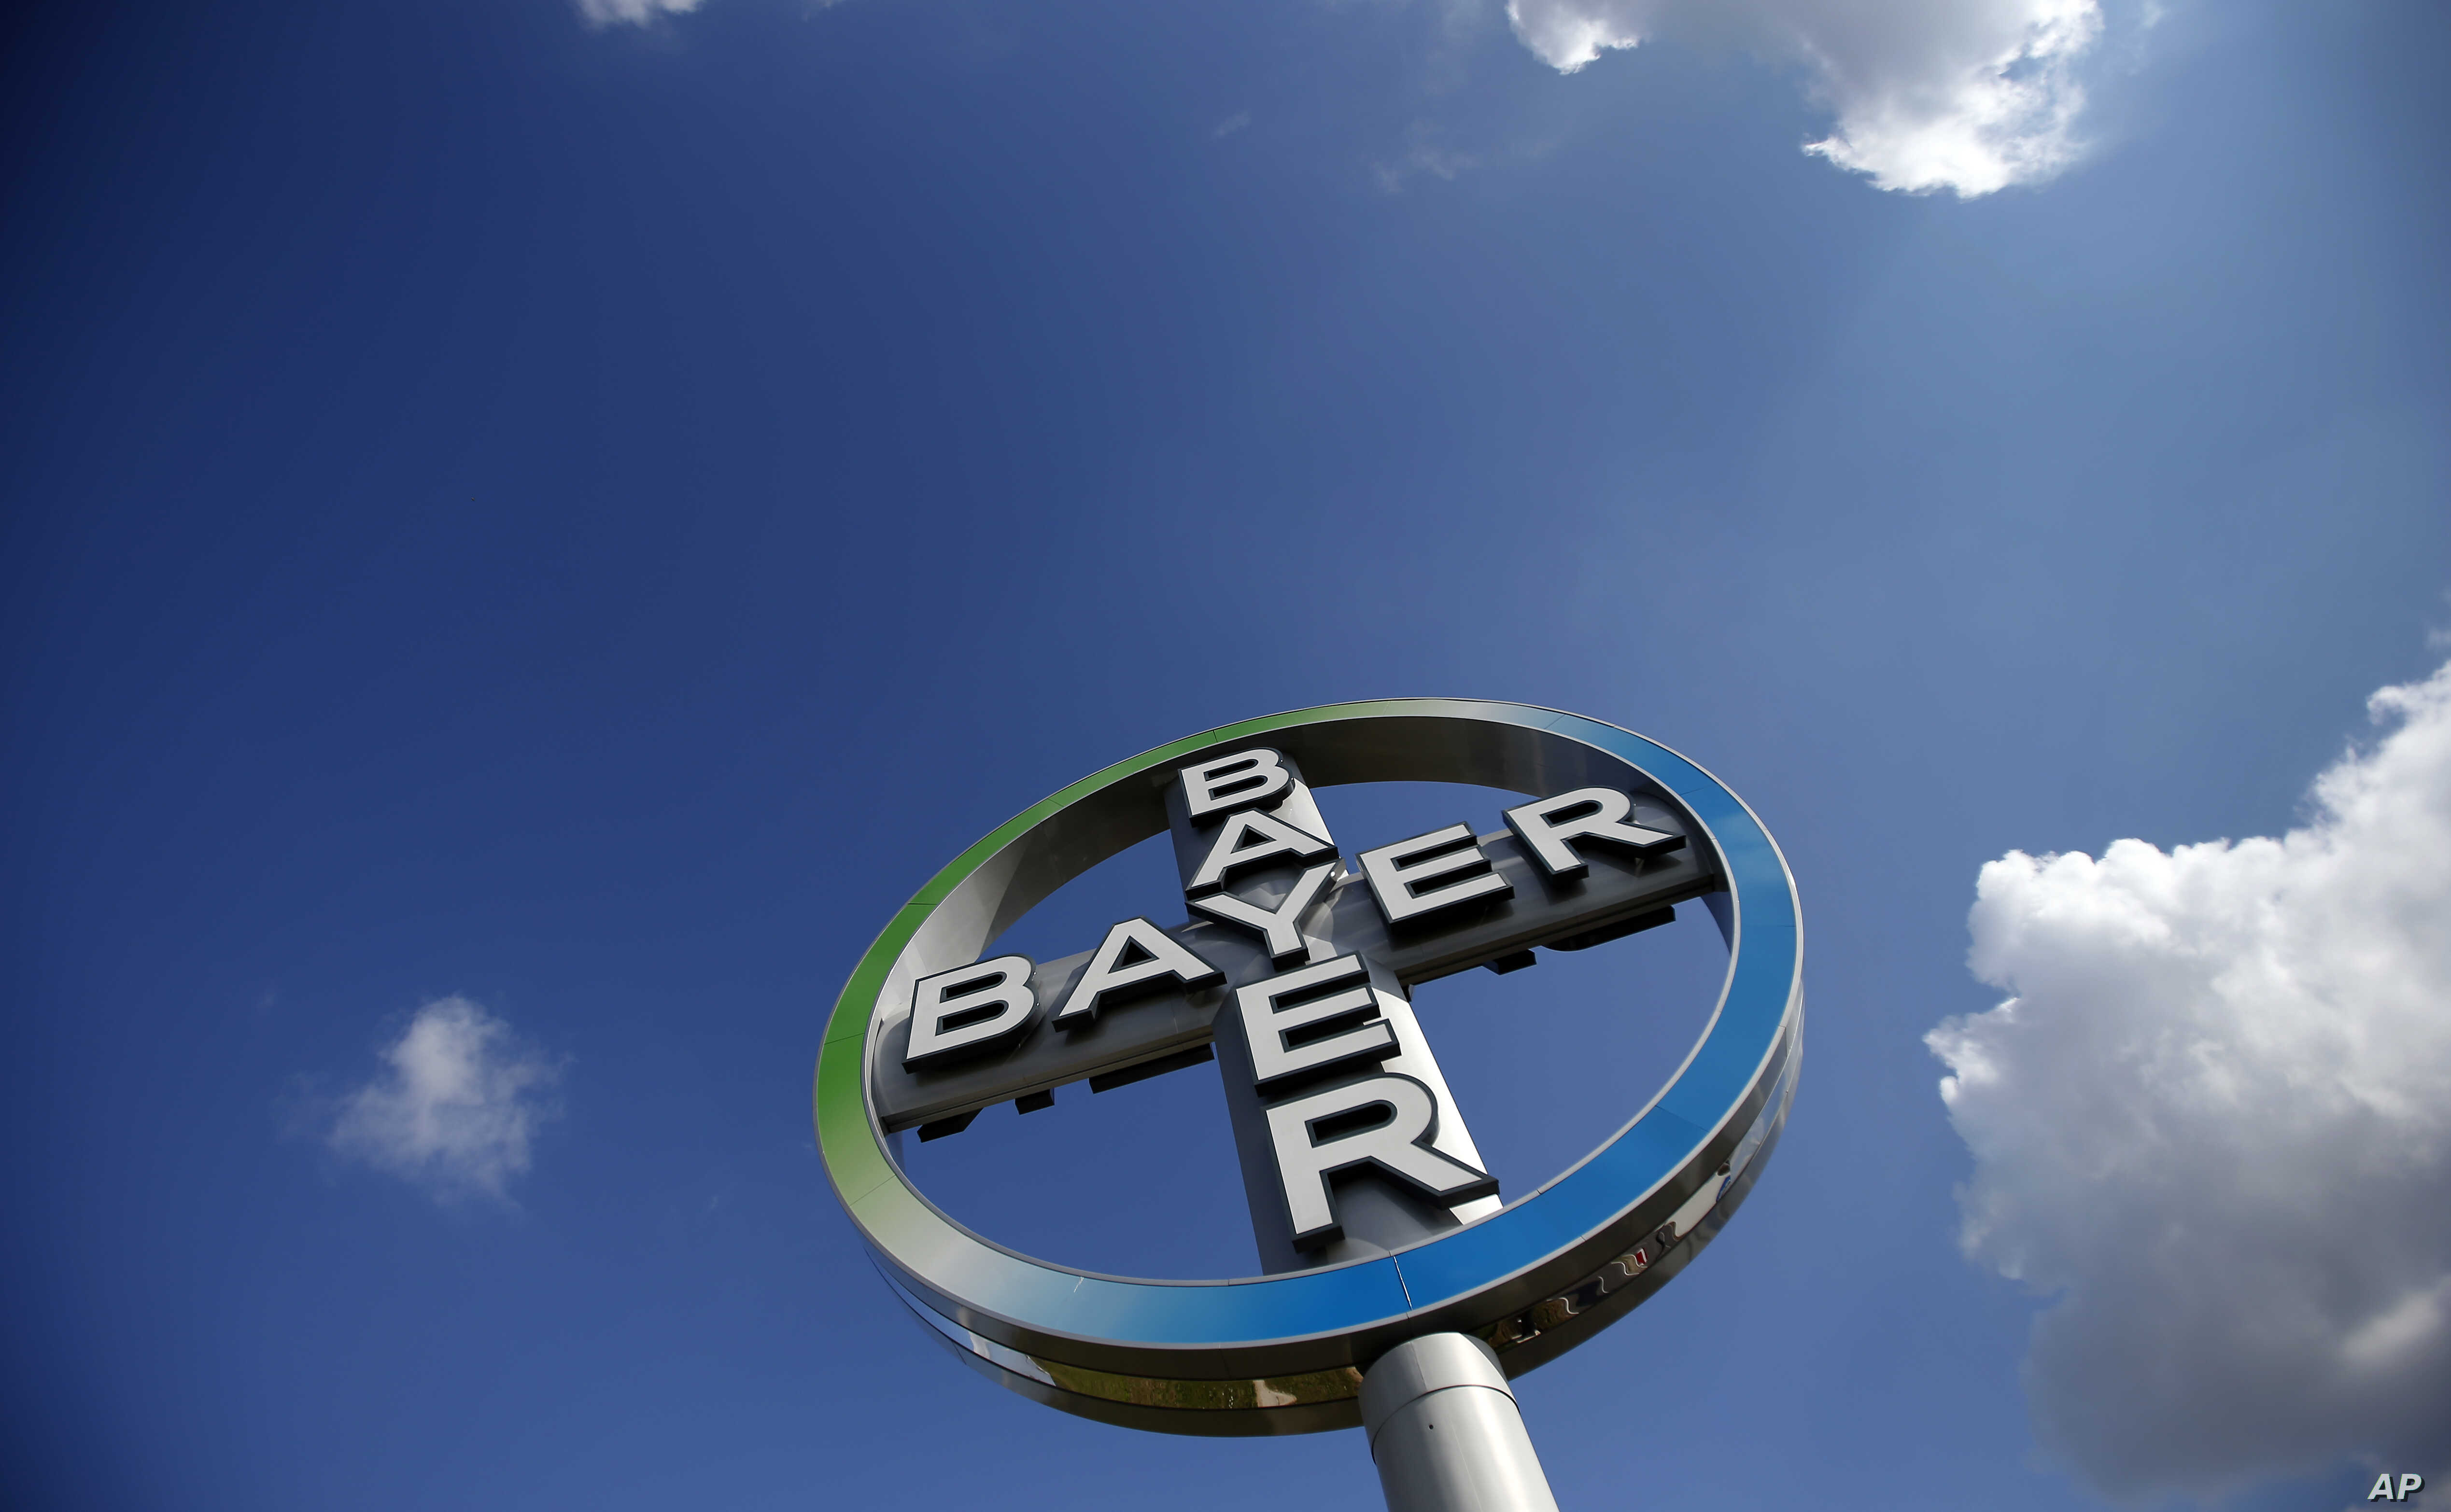 Bayer Offers to Buy Monsanto in Global Agrochemicals Shakeout